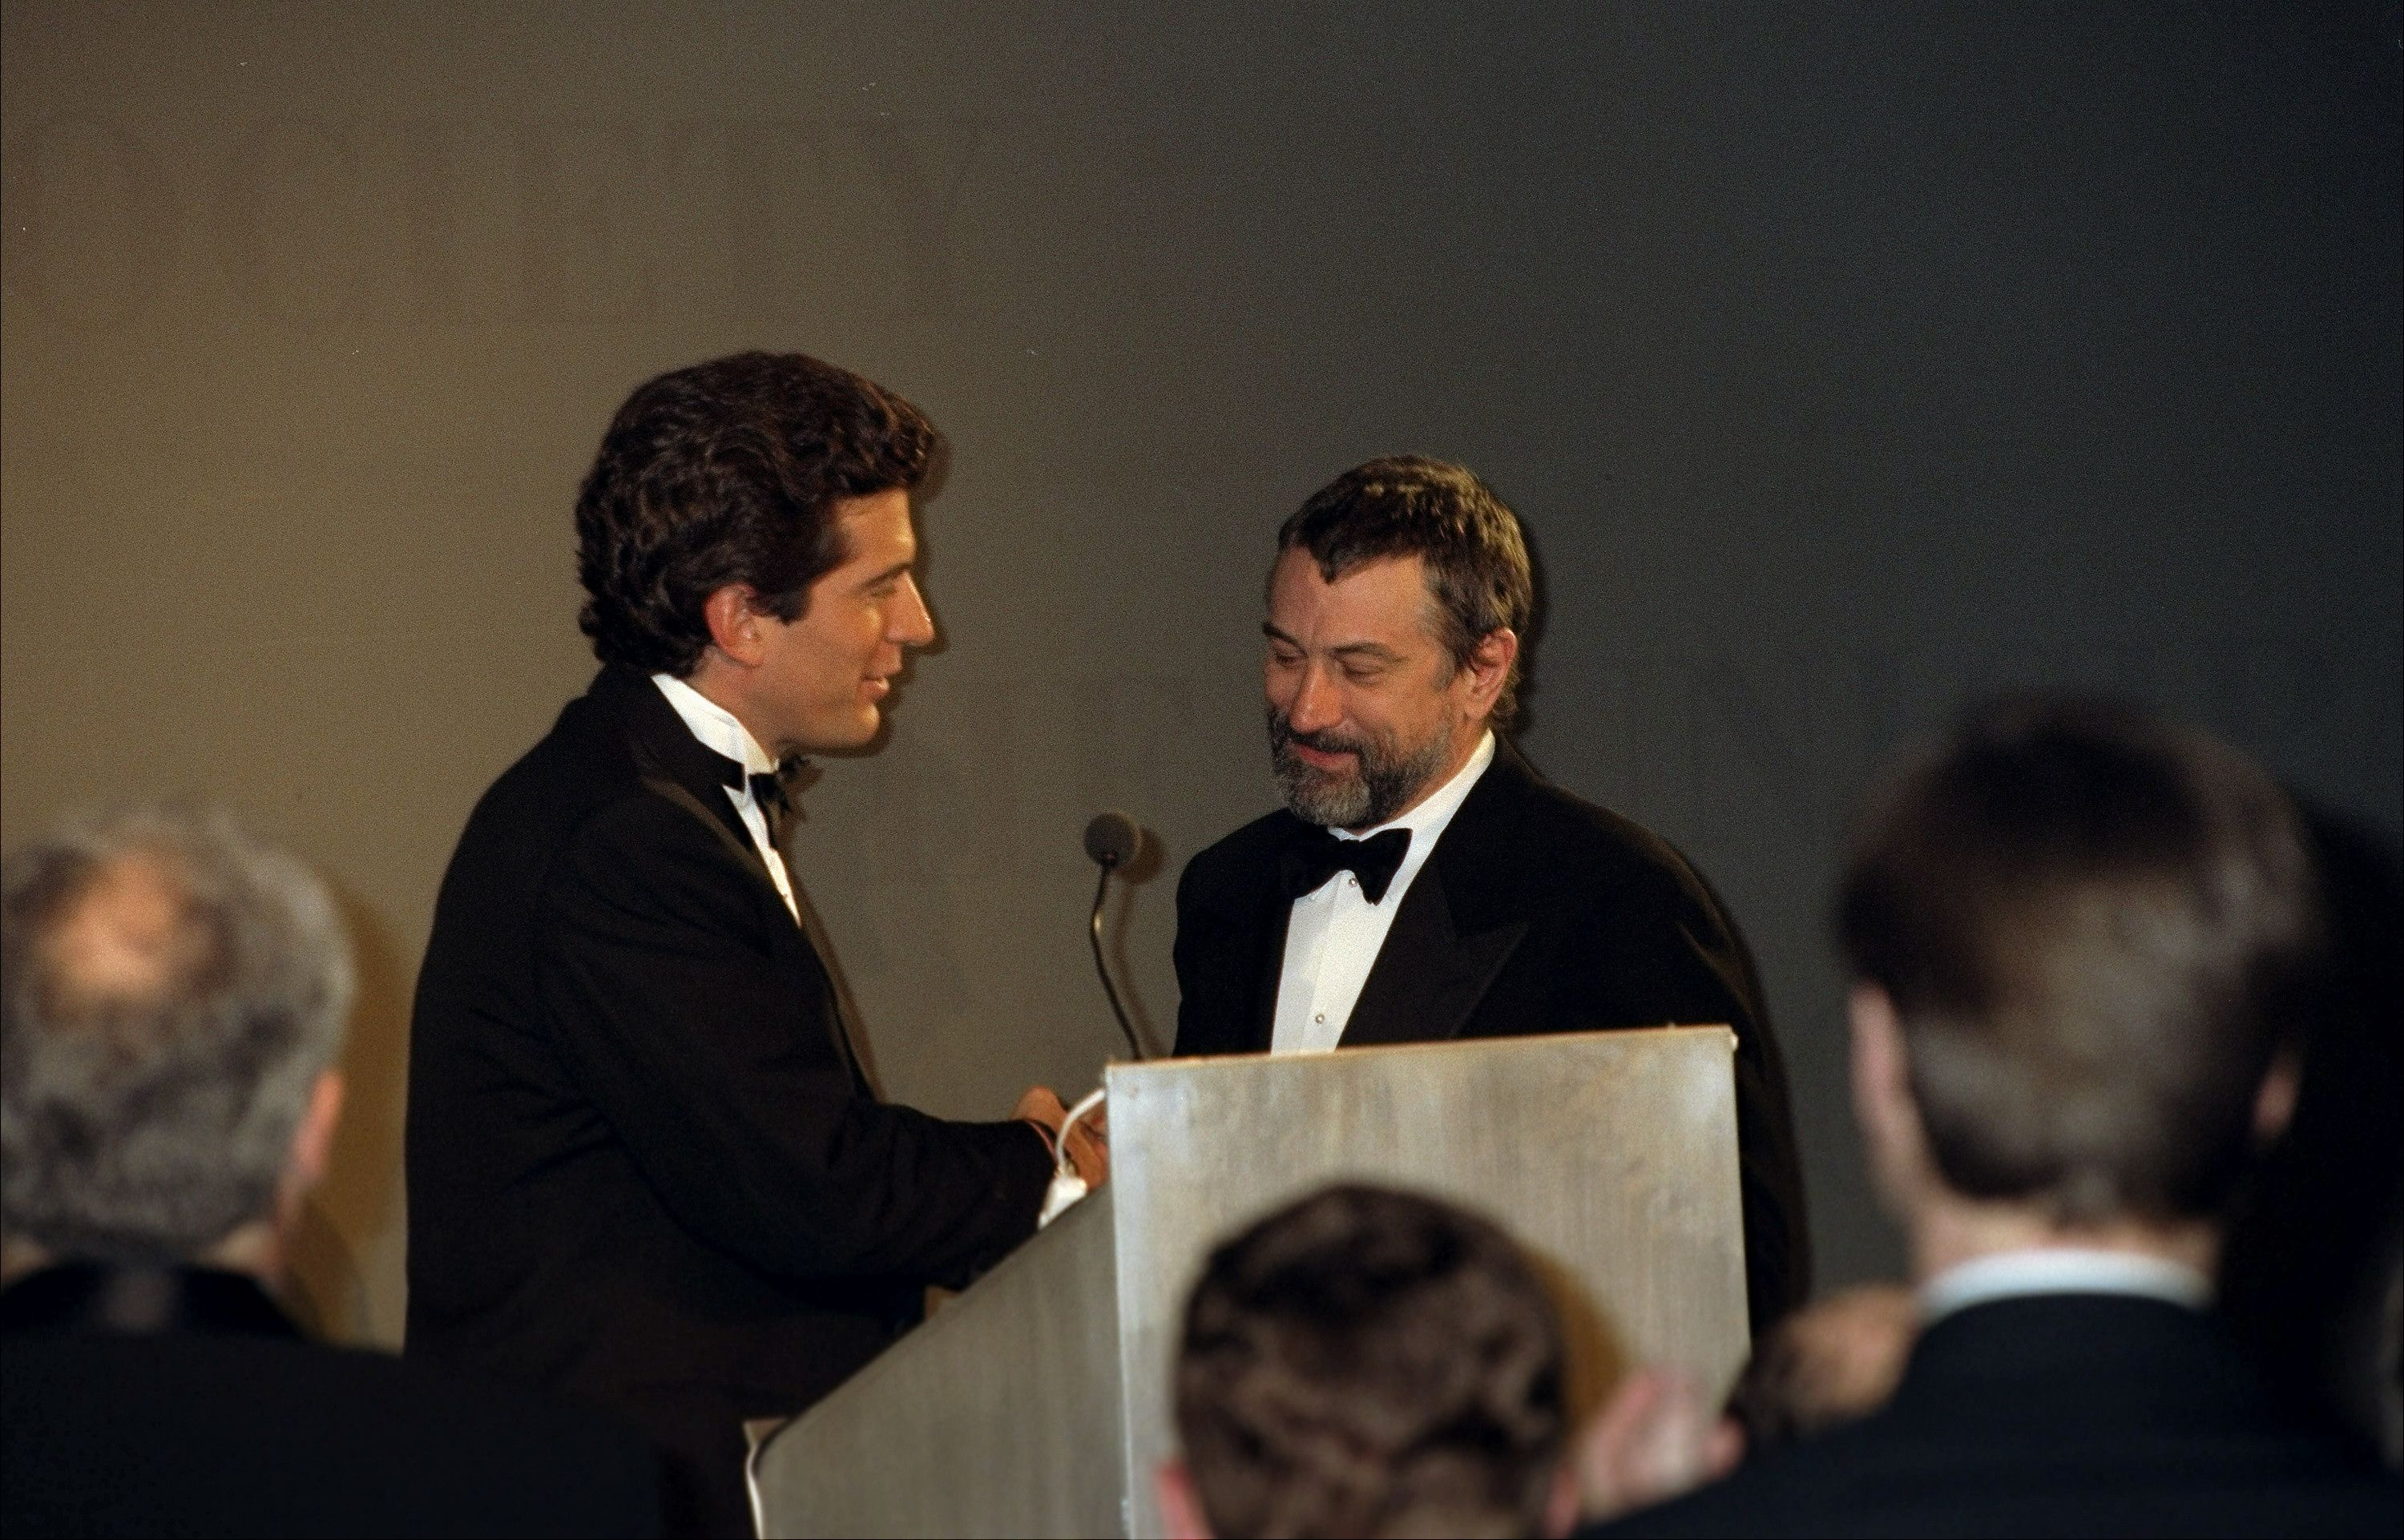 John F. Kennedy Jr. presents Robert De Niro with the Jacqueline Kennedy Onassis Medal during the Municipal Art Society Gala in 1997.